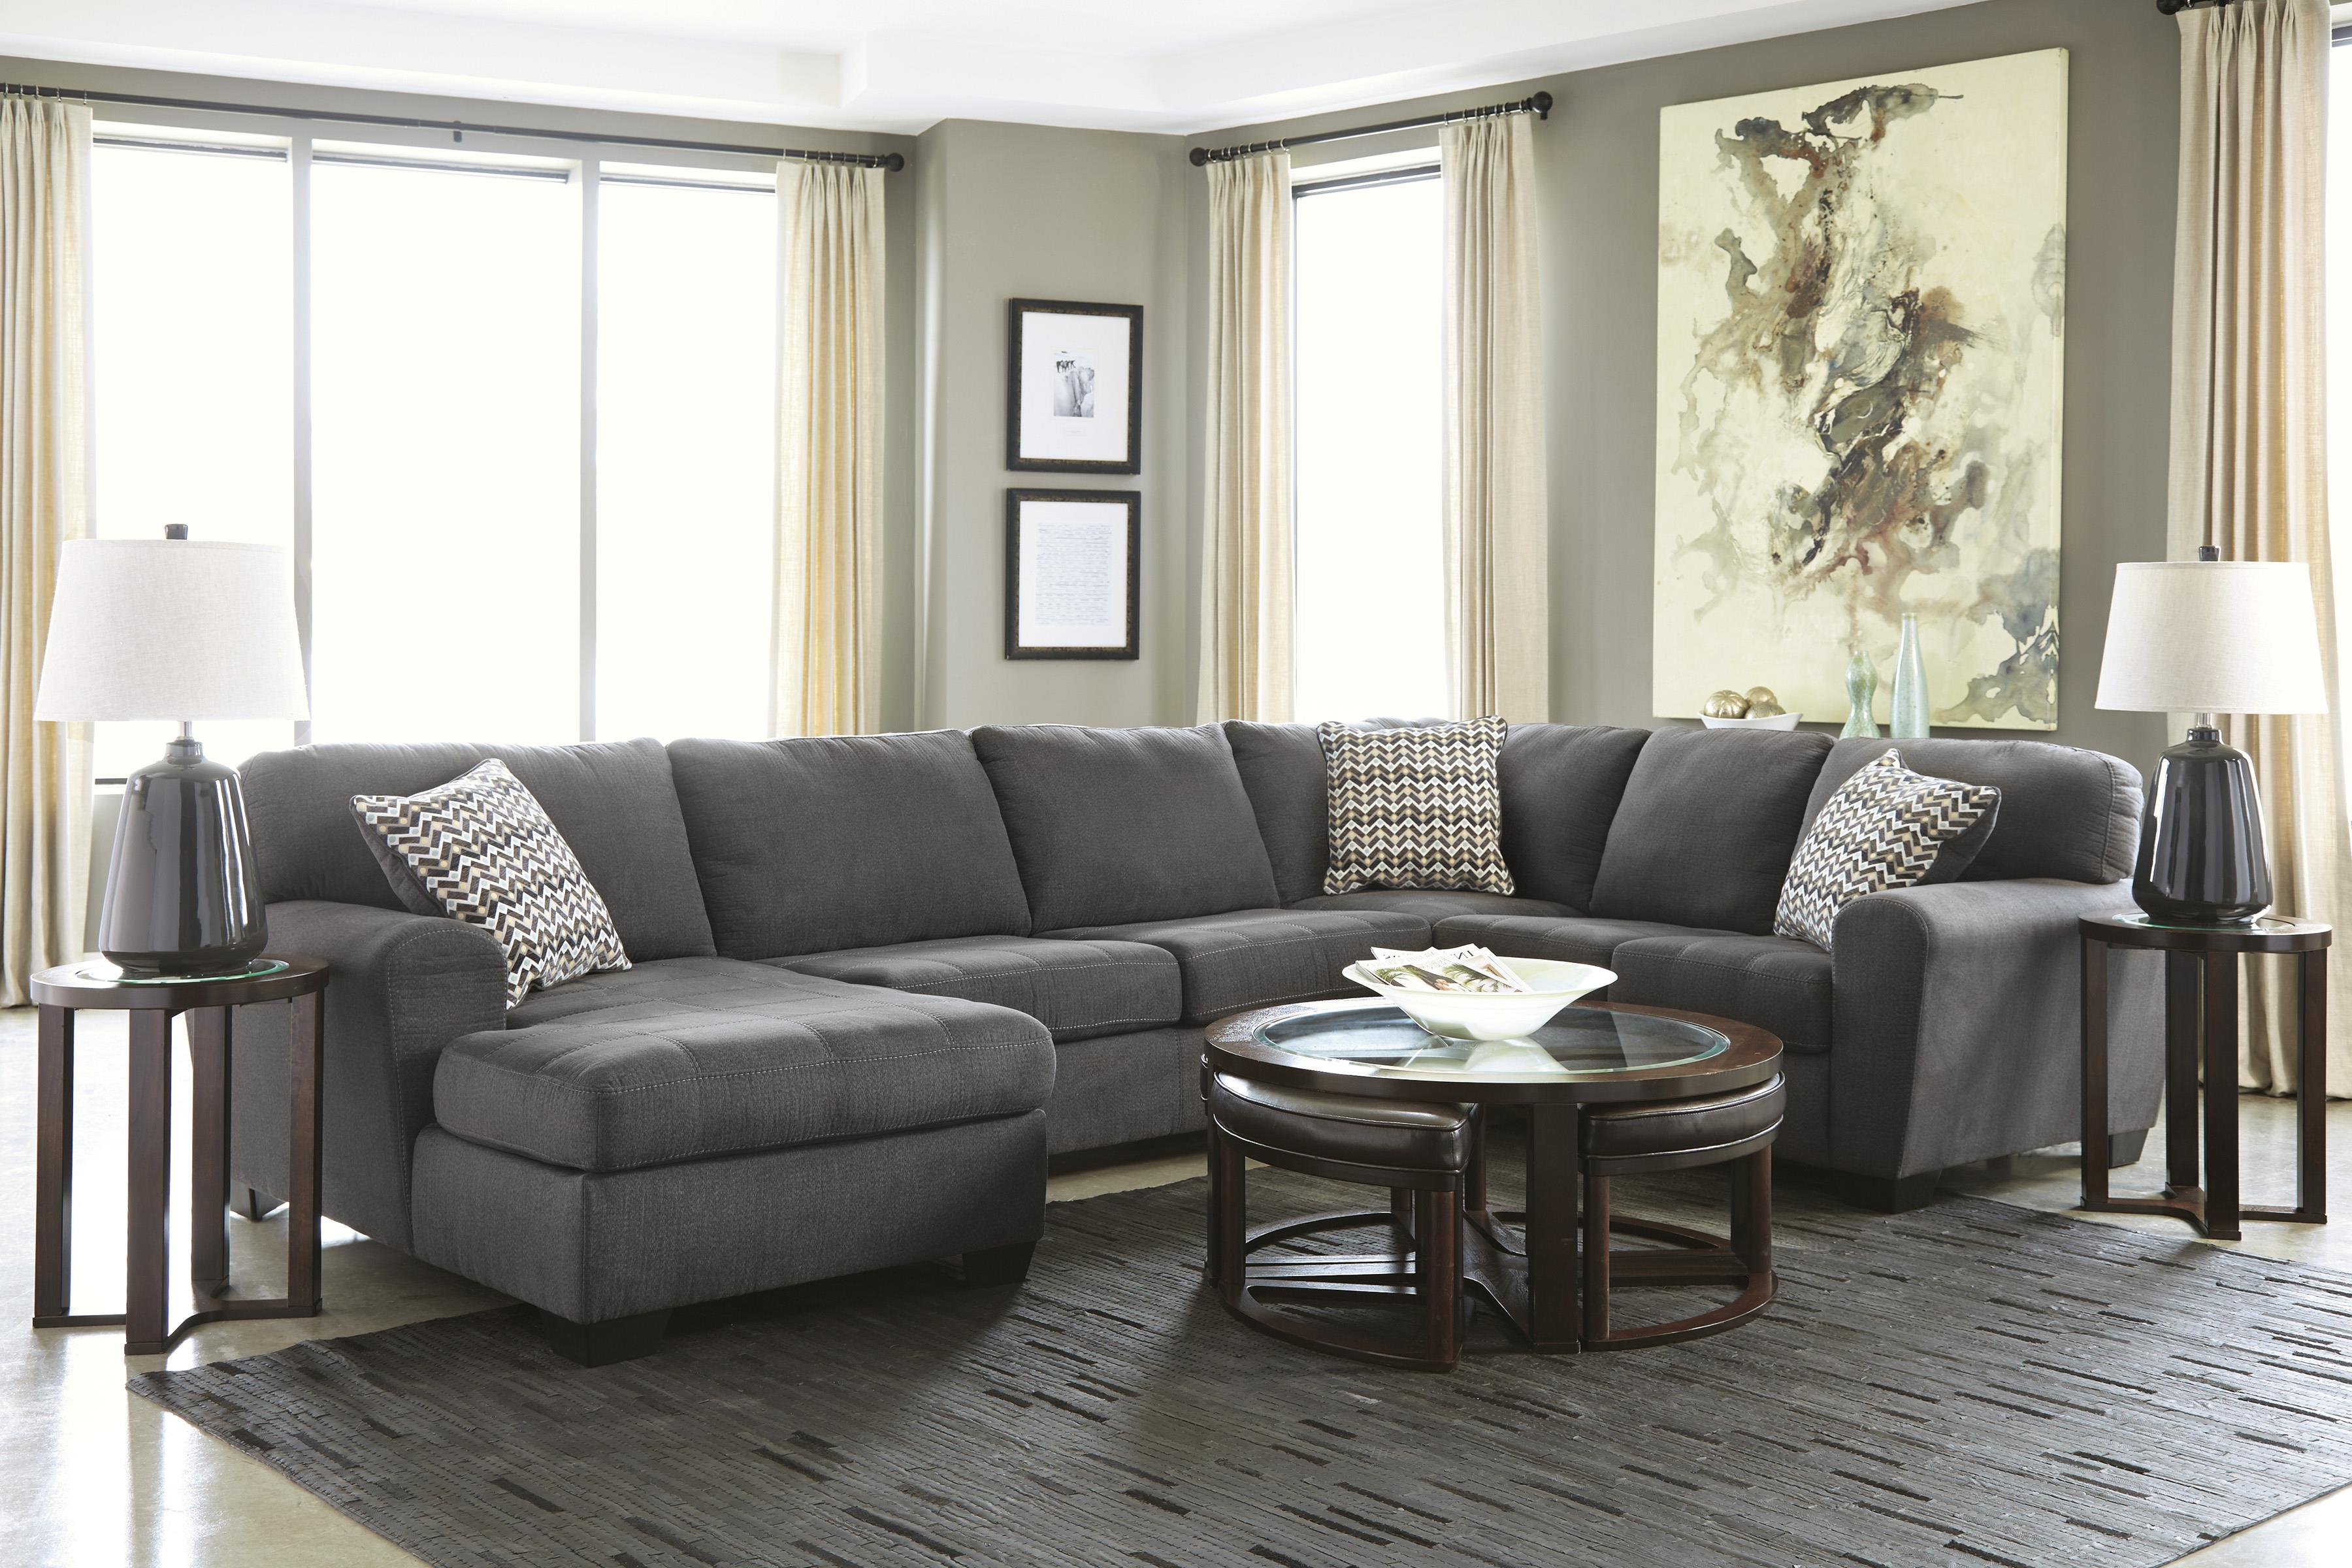 Benchcraft By Ashley Sorenton Contemporary 3 Piece Sectional With Left Chaise Royal Furniture